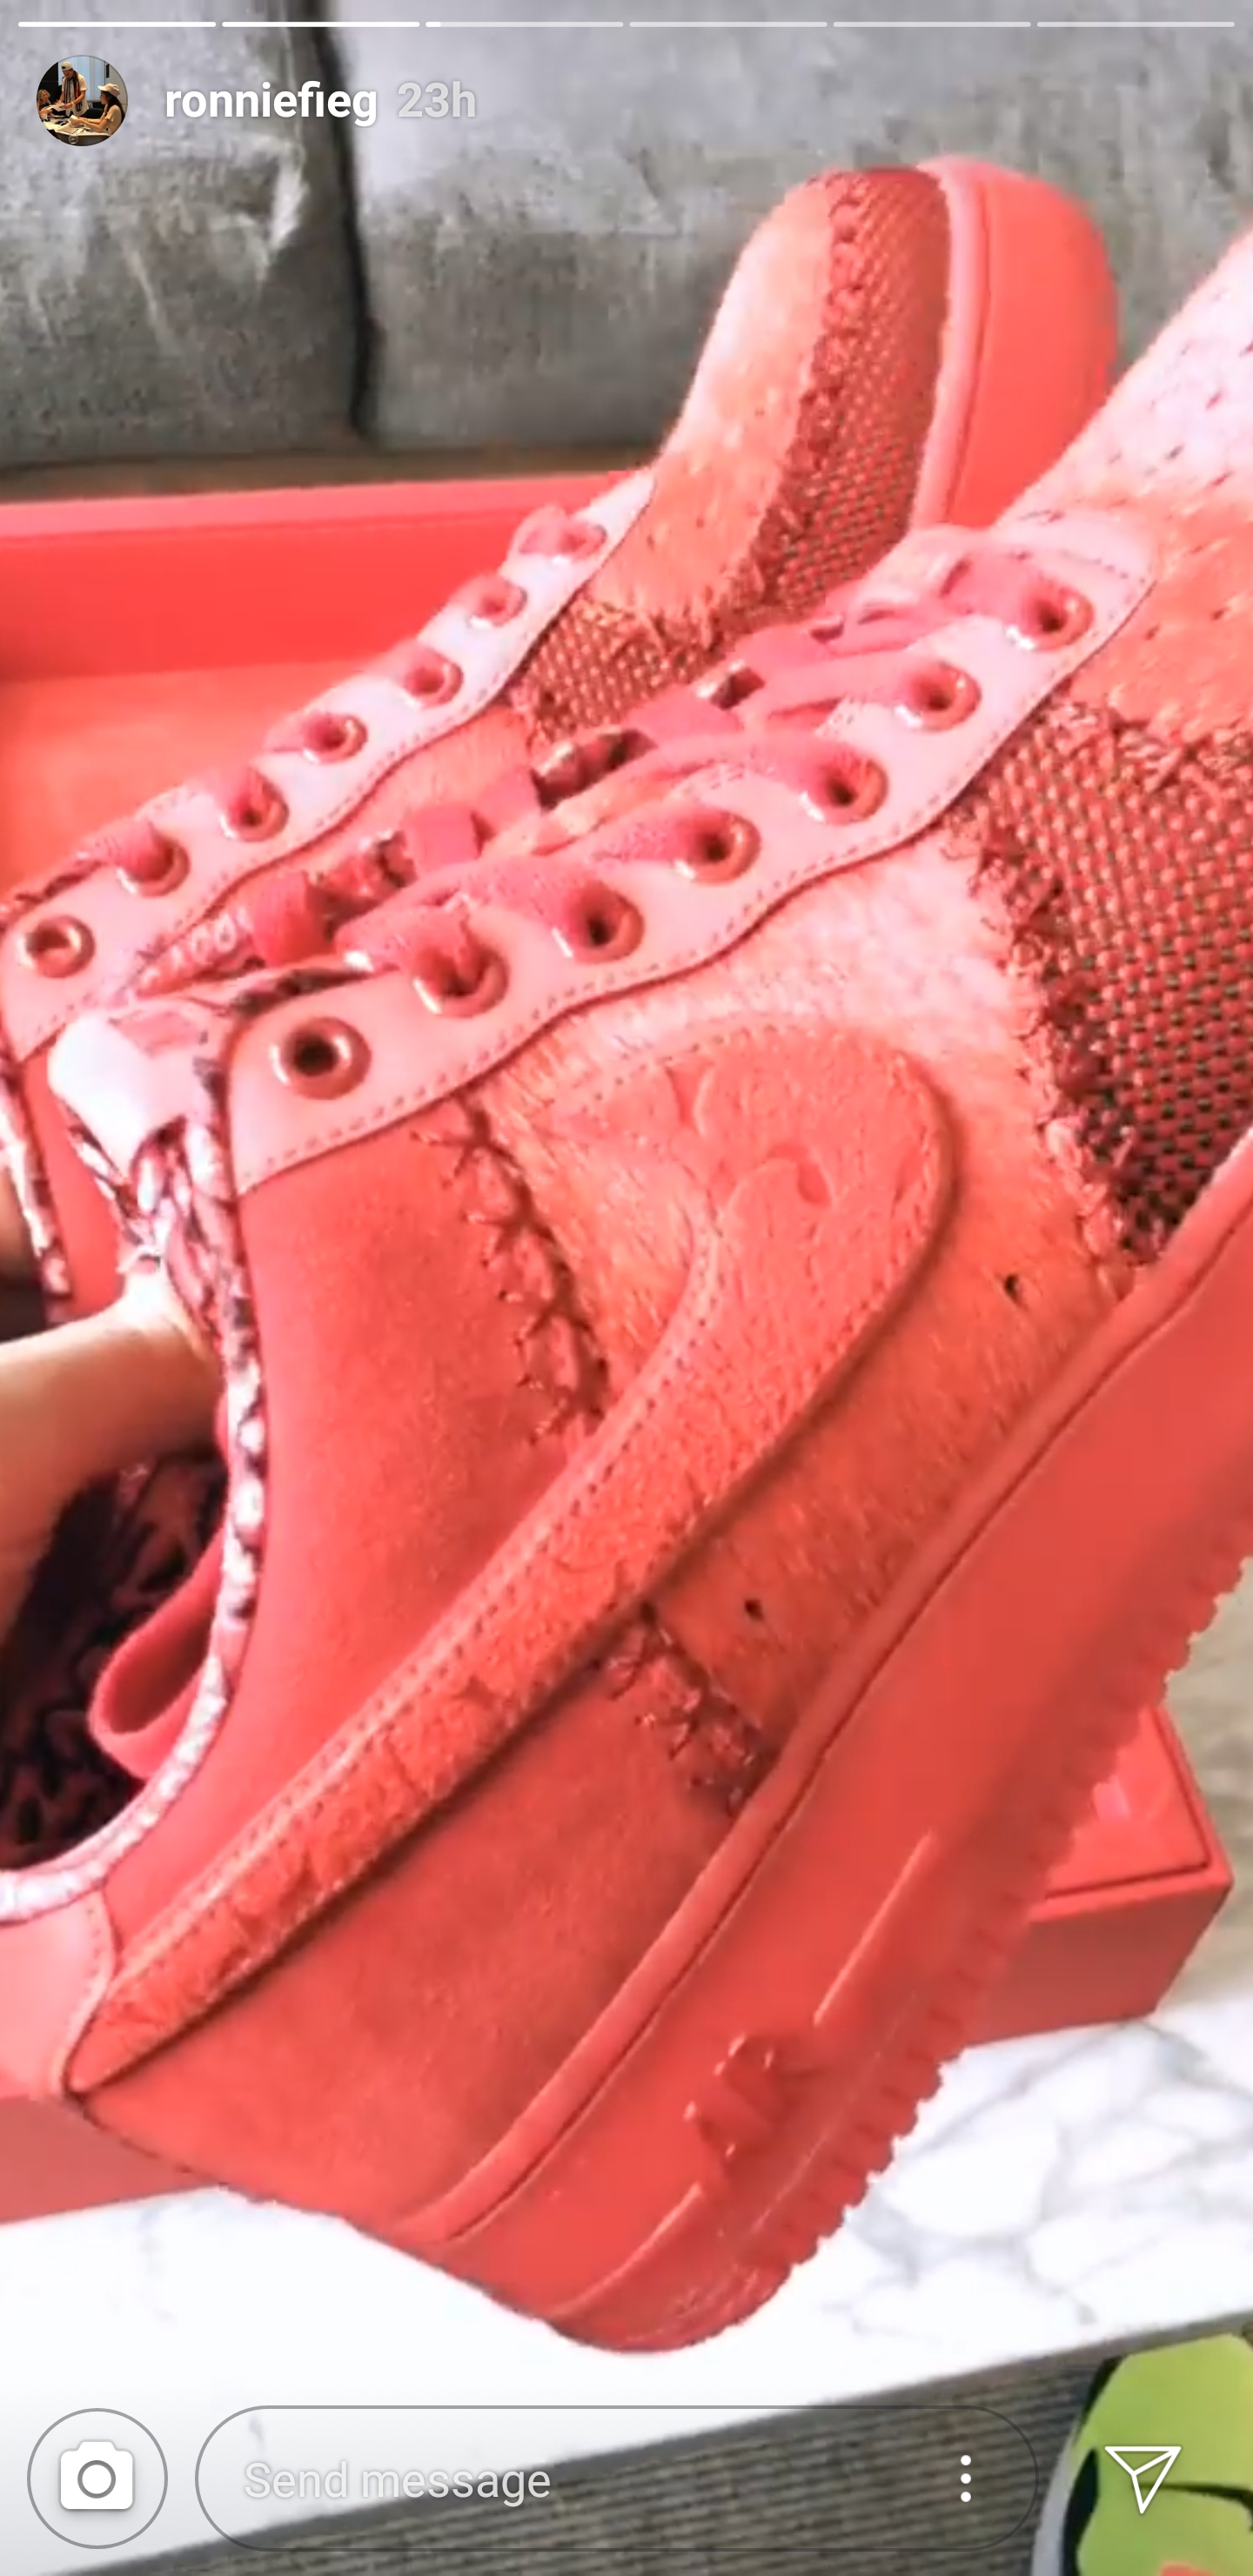 Ronnie Fieg Shows Off Rare 'OBJ' Air Force 1 Low WearTesters